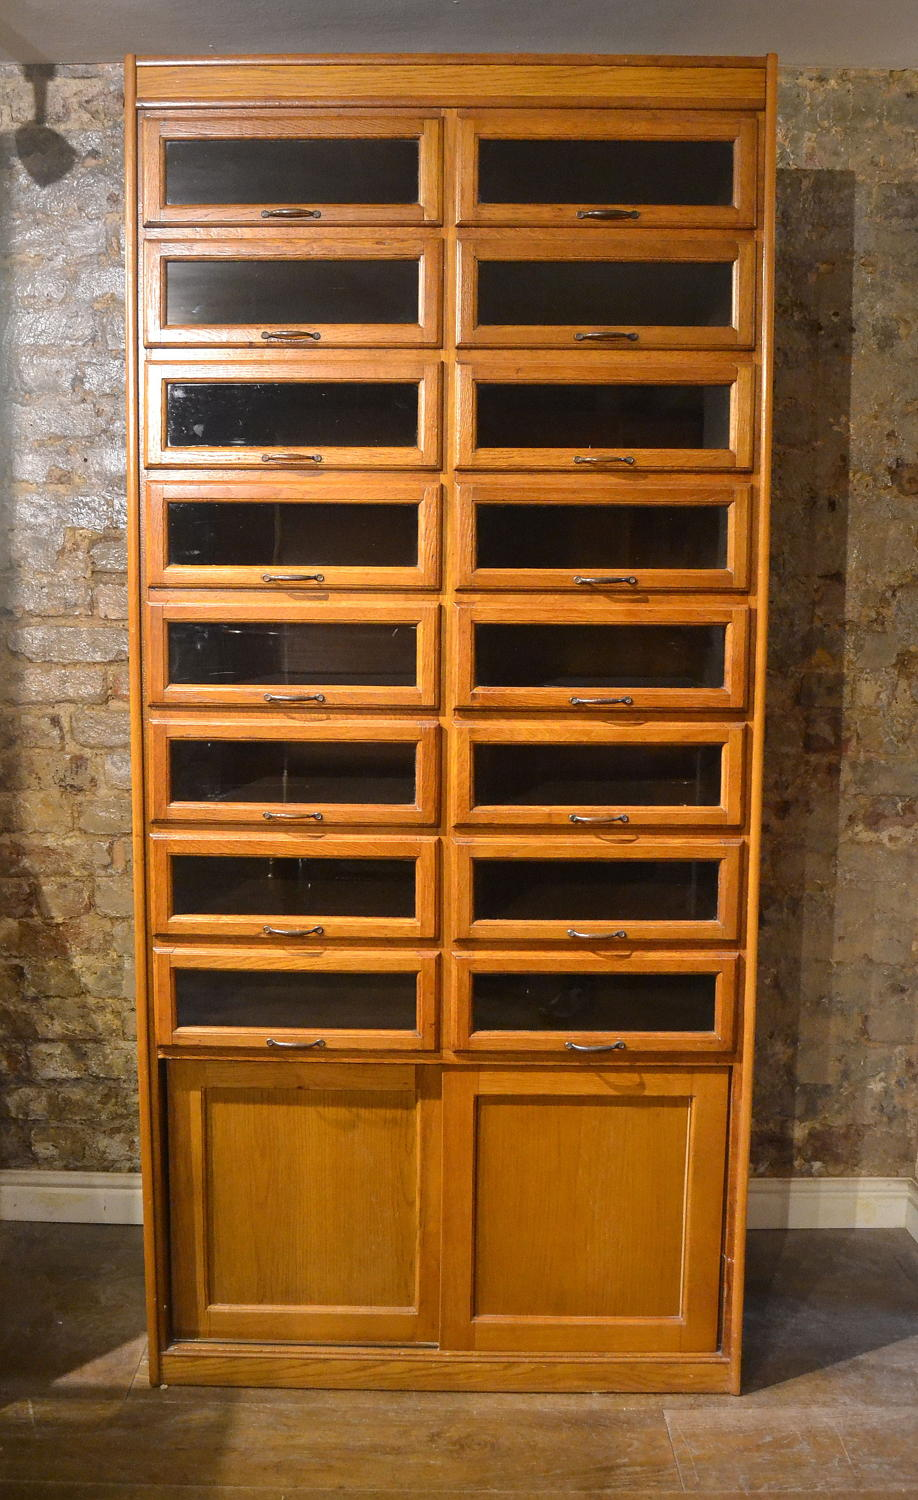 Antique Haberdashery Drawers Shopfitting Cabinet